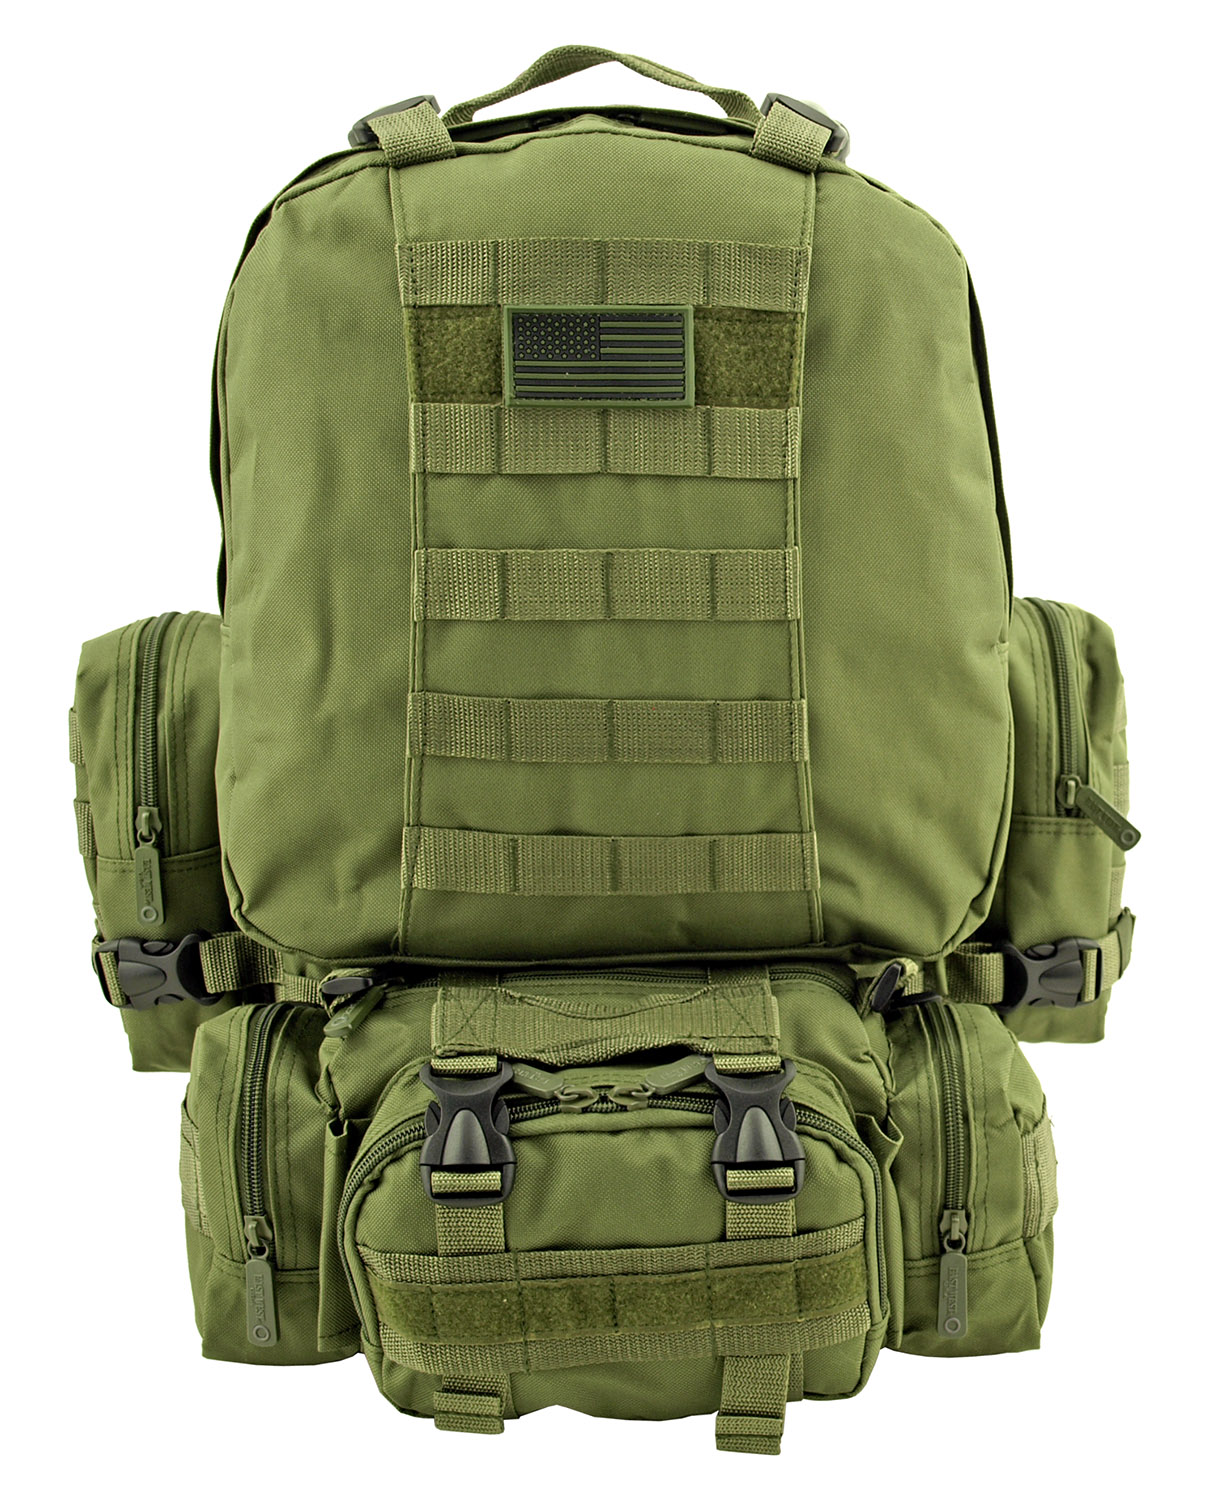 Large Tactical Assault Rucksack Backpack - Olive Green